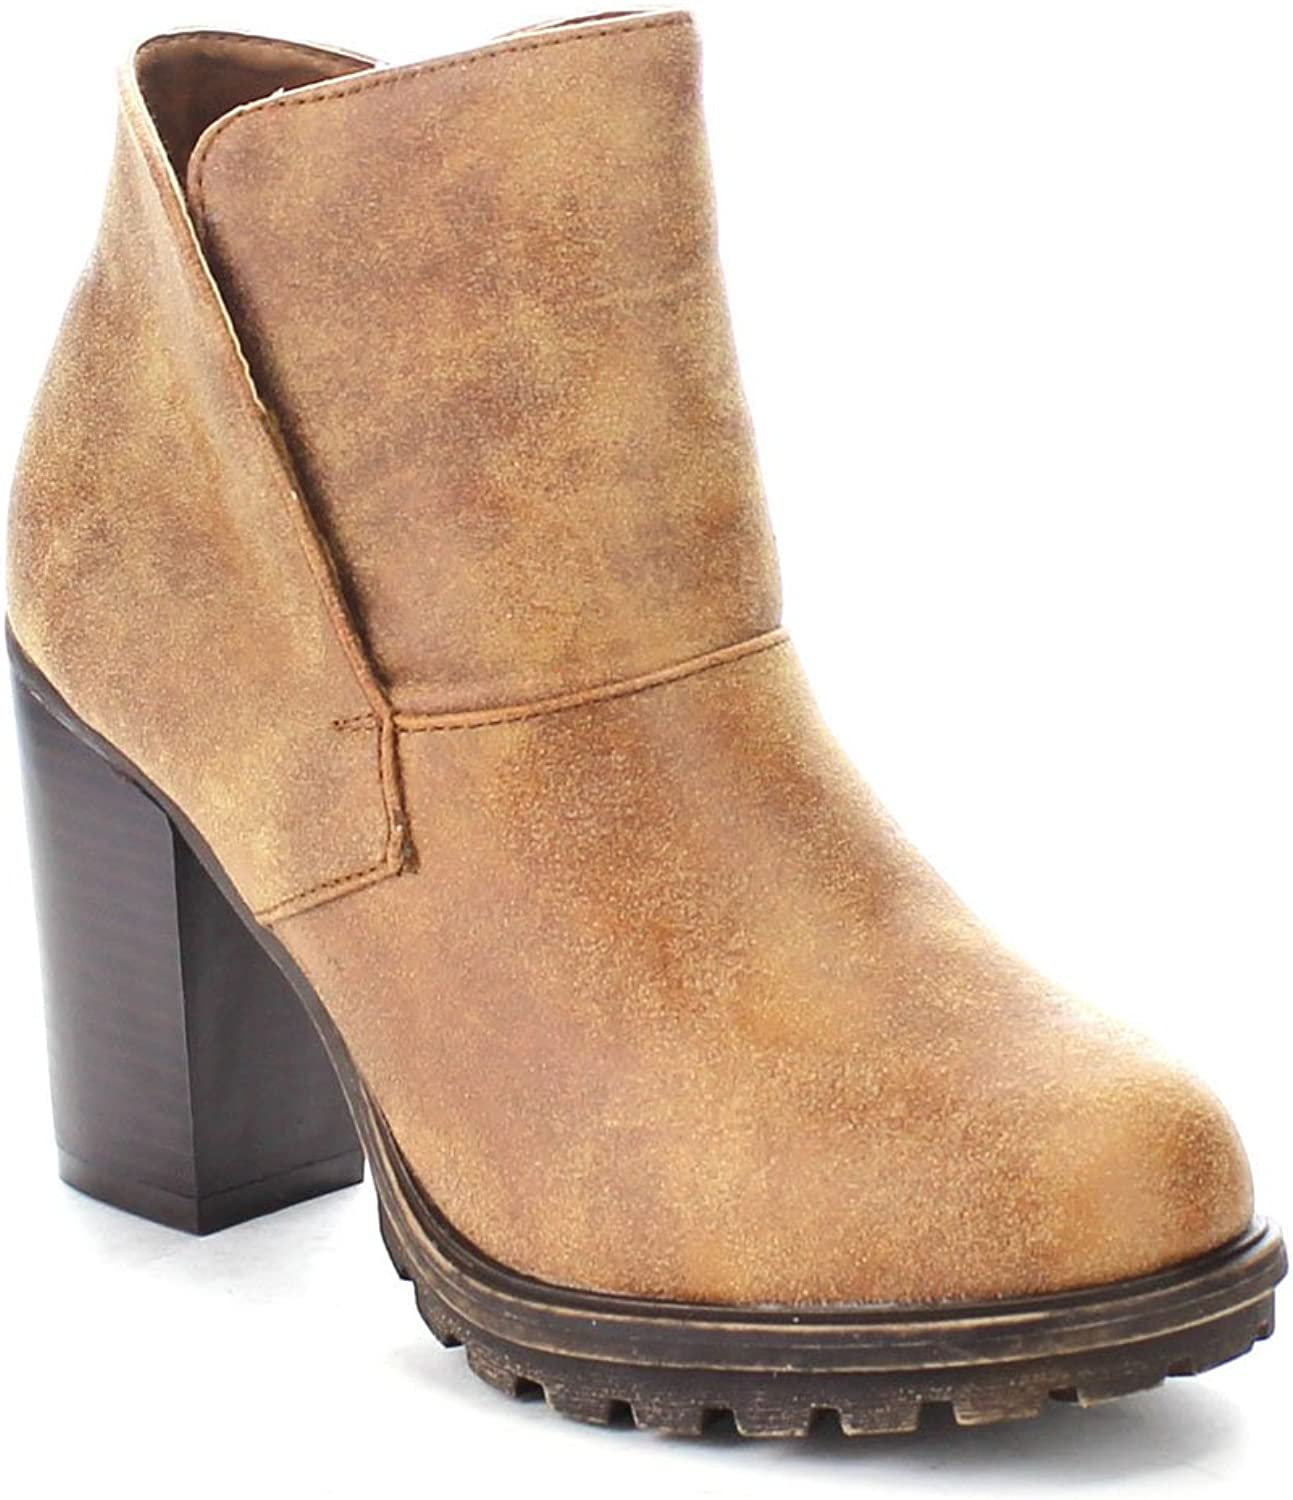 Bamboo Tracker-03 Women's Slip On Chunky Heel Lug Sole Ankle Booties